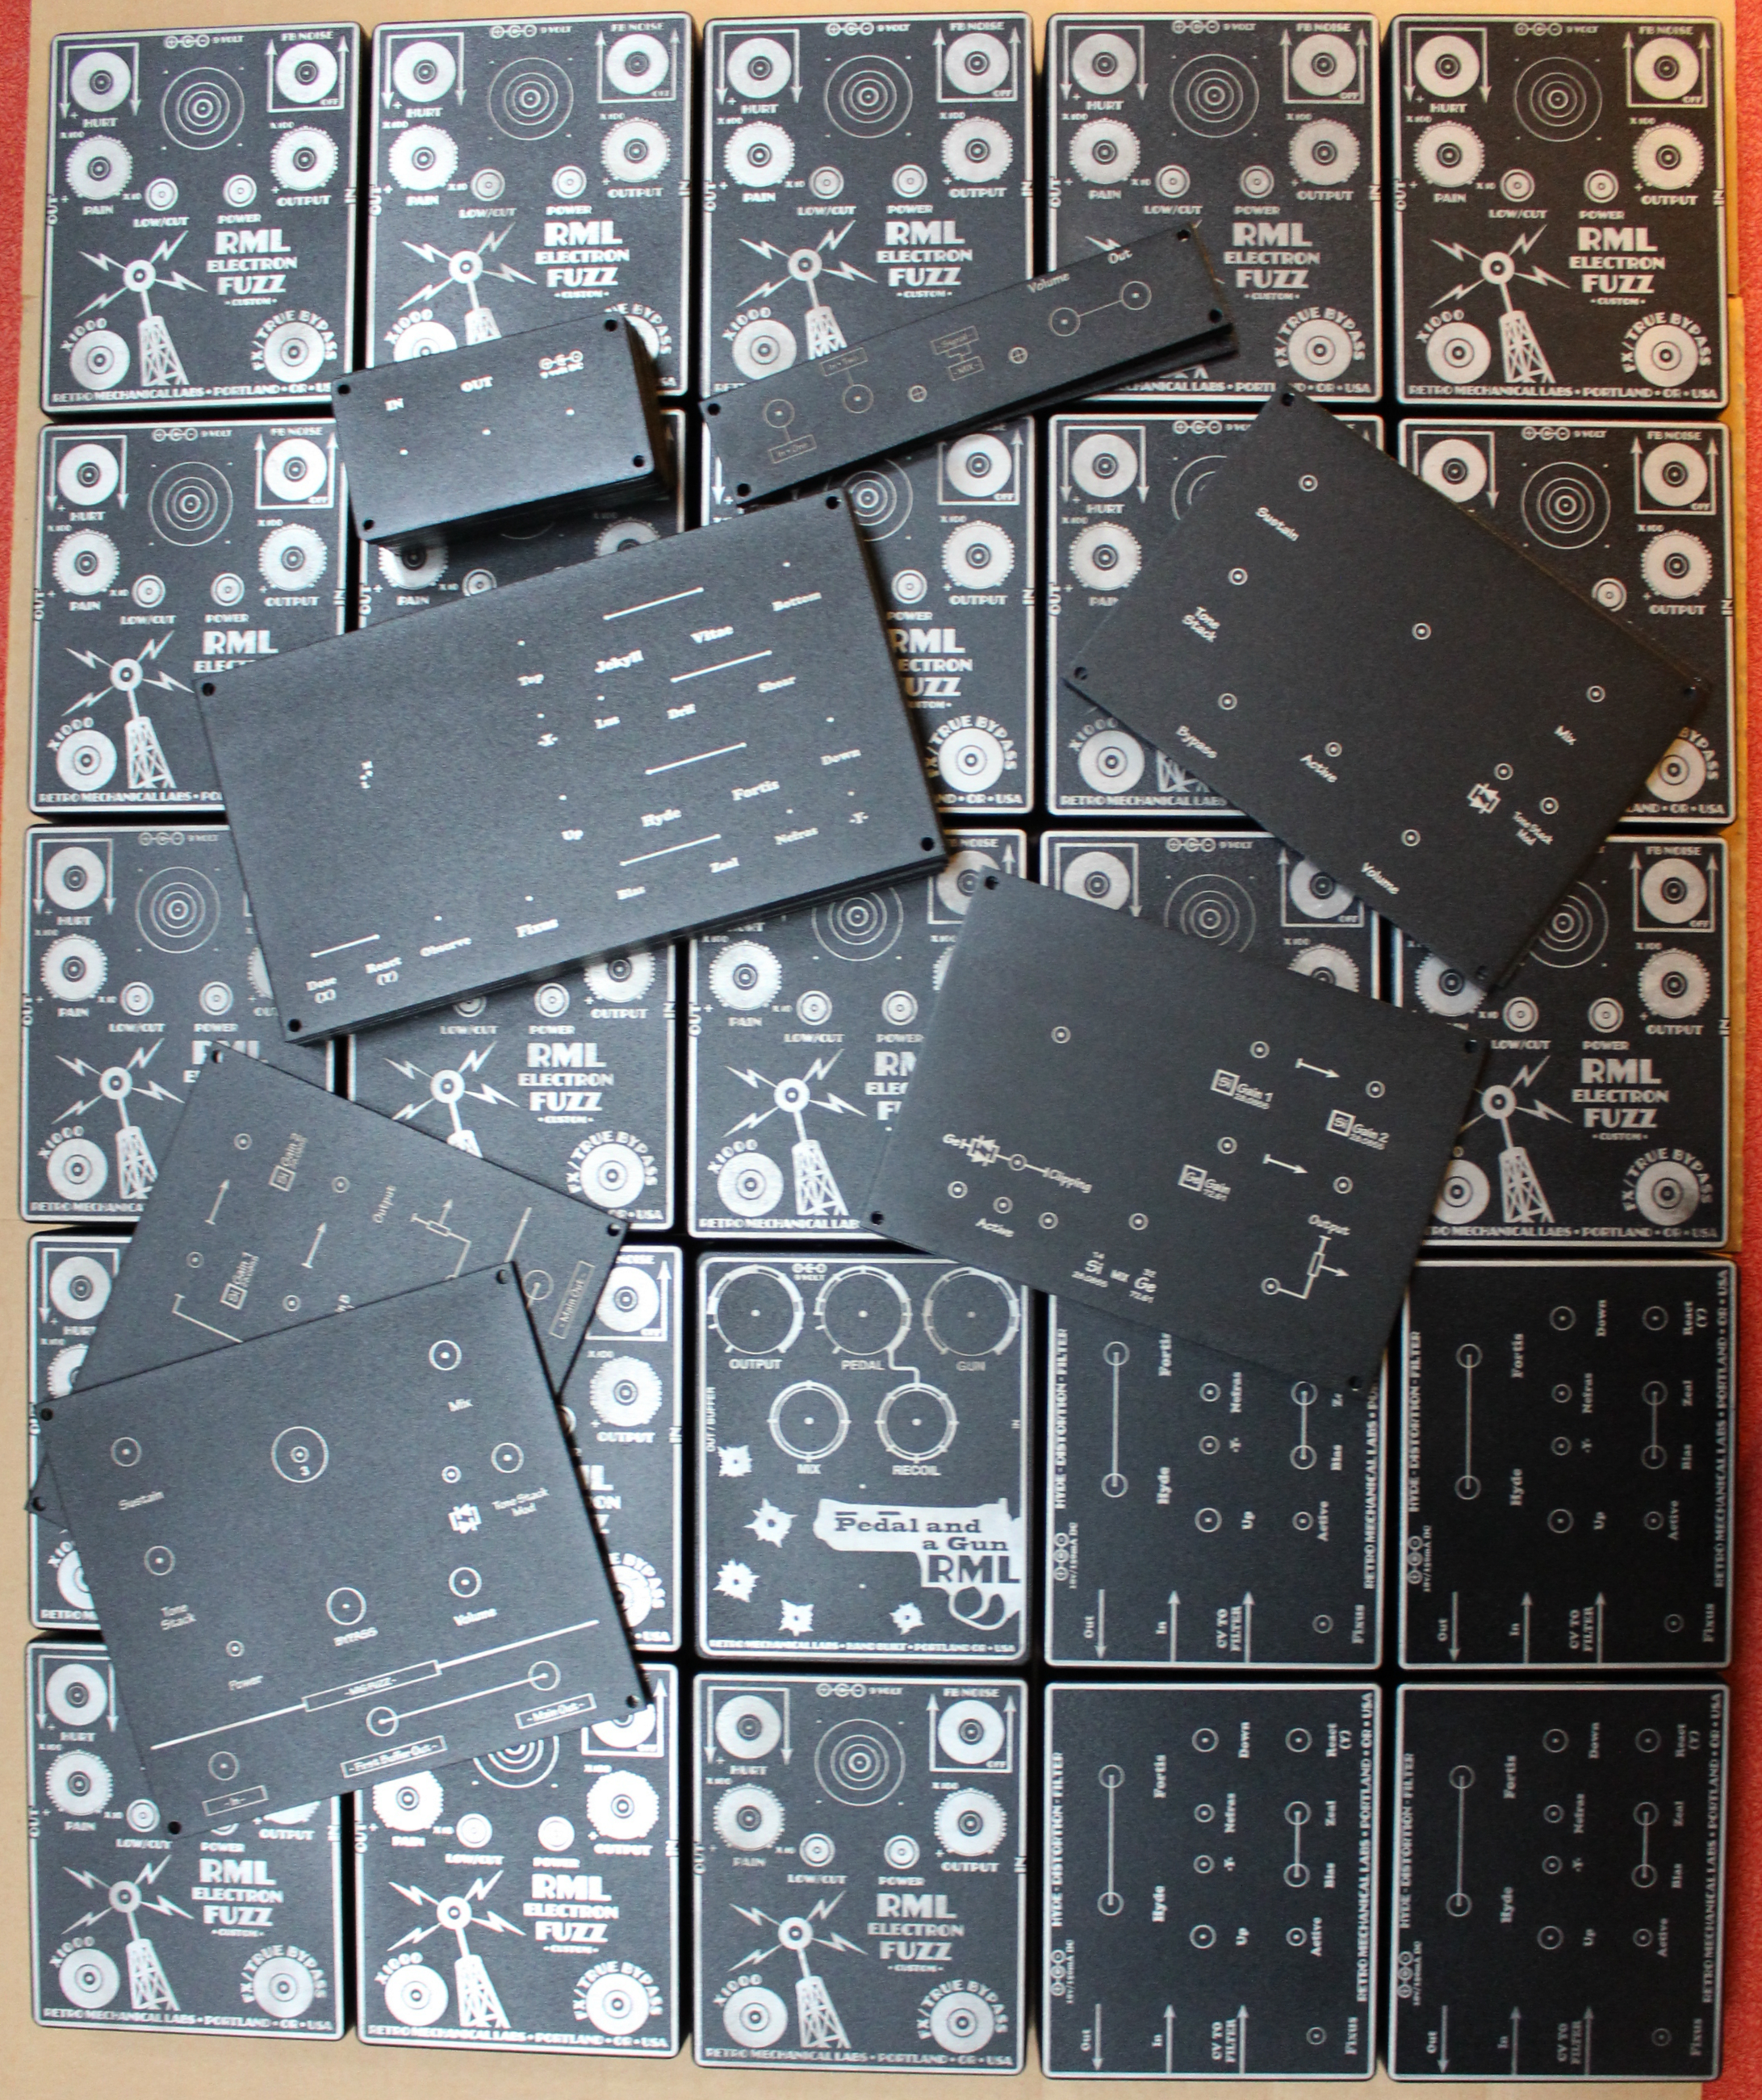 An overhead view of freshly engraved distortion boxes and panels for RML.